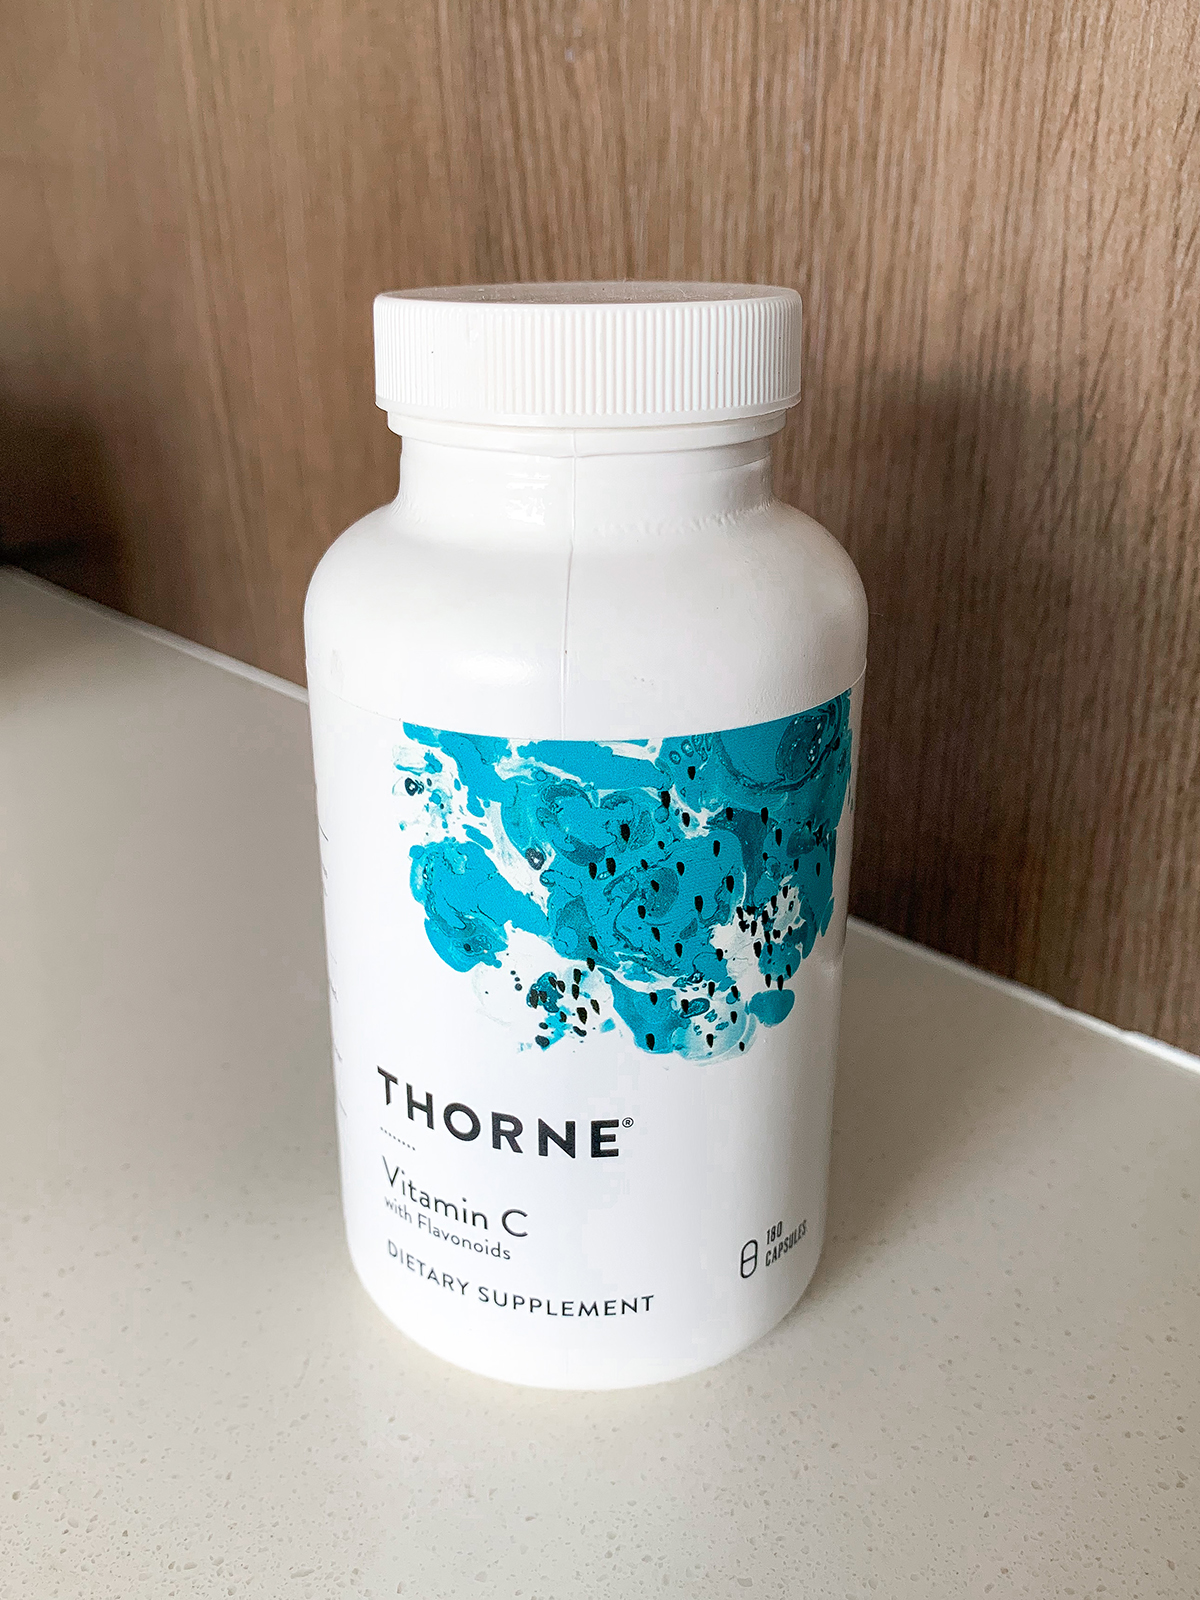 Thorne Vitamin C Supplement